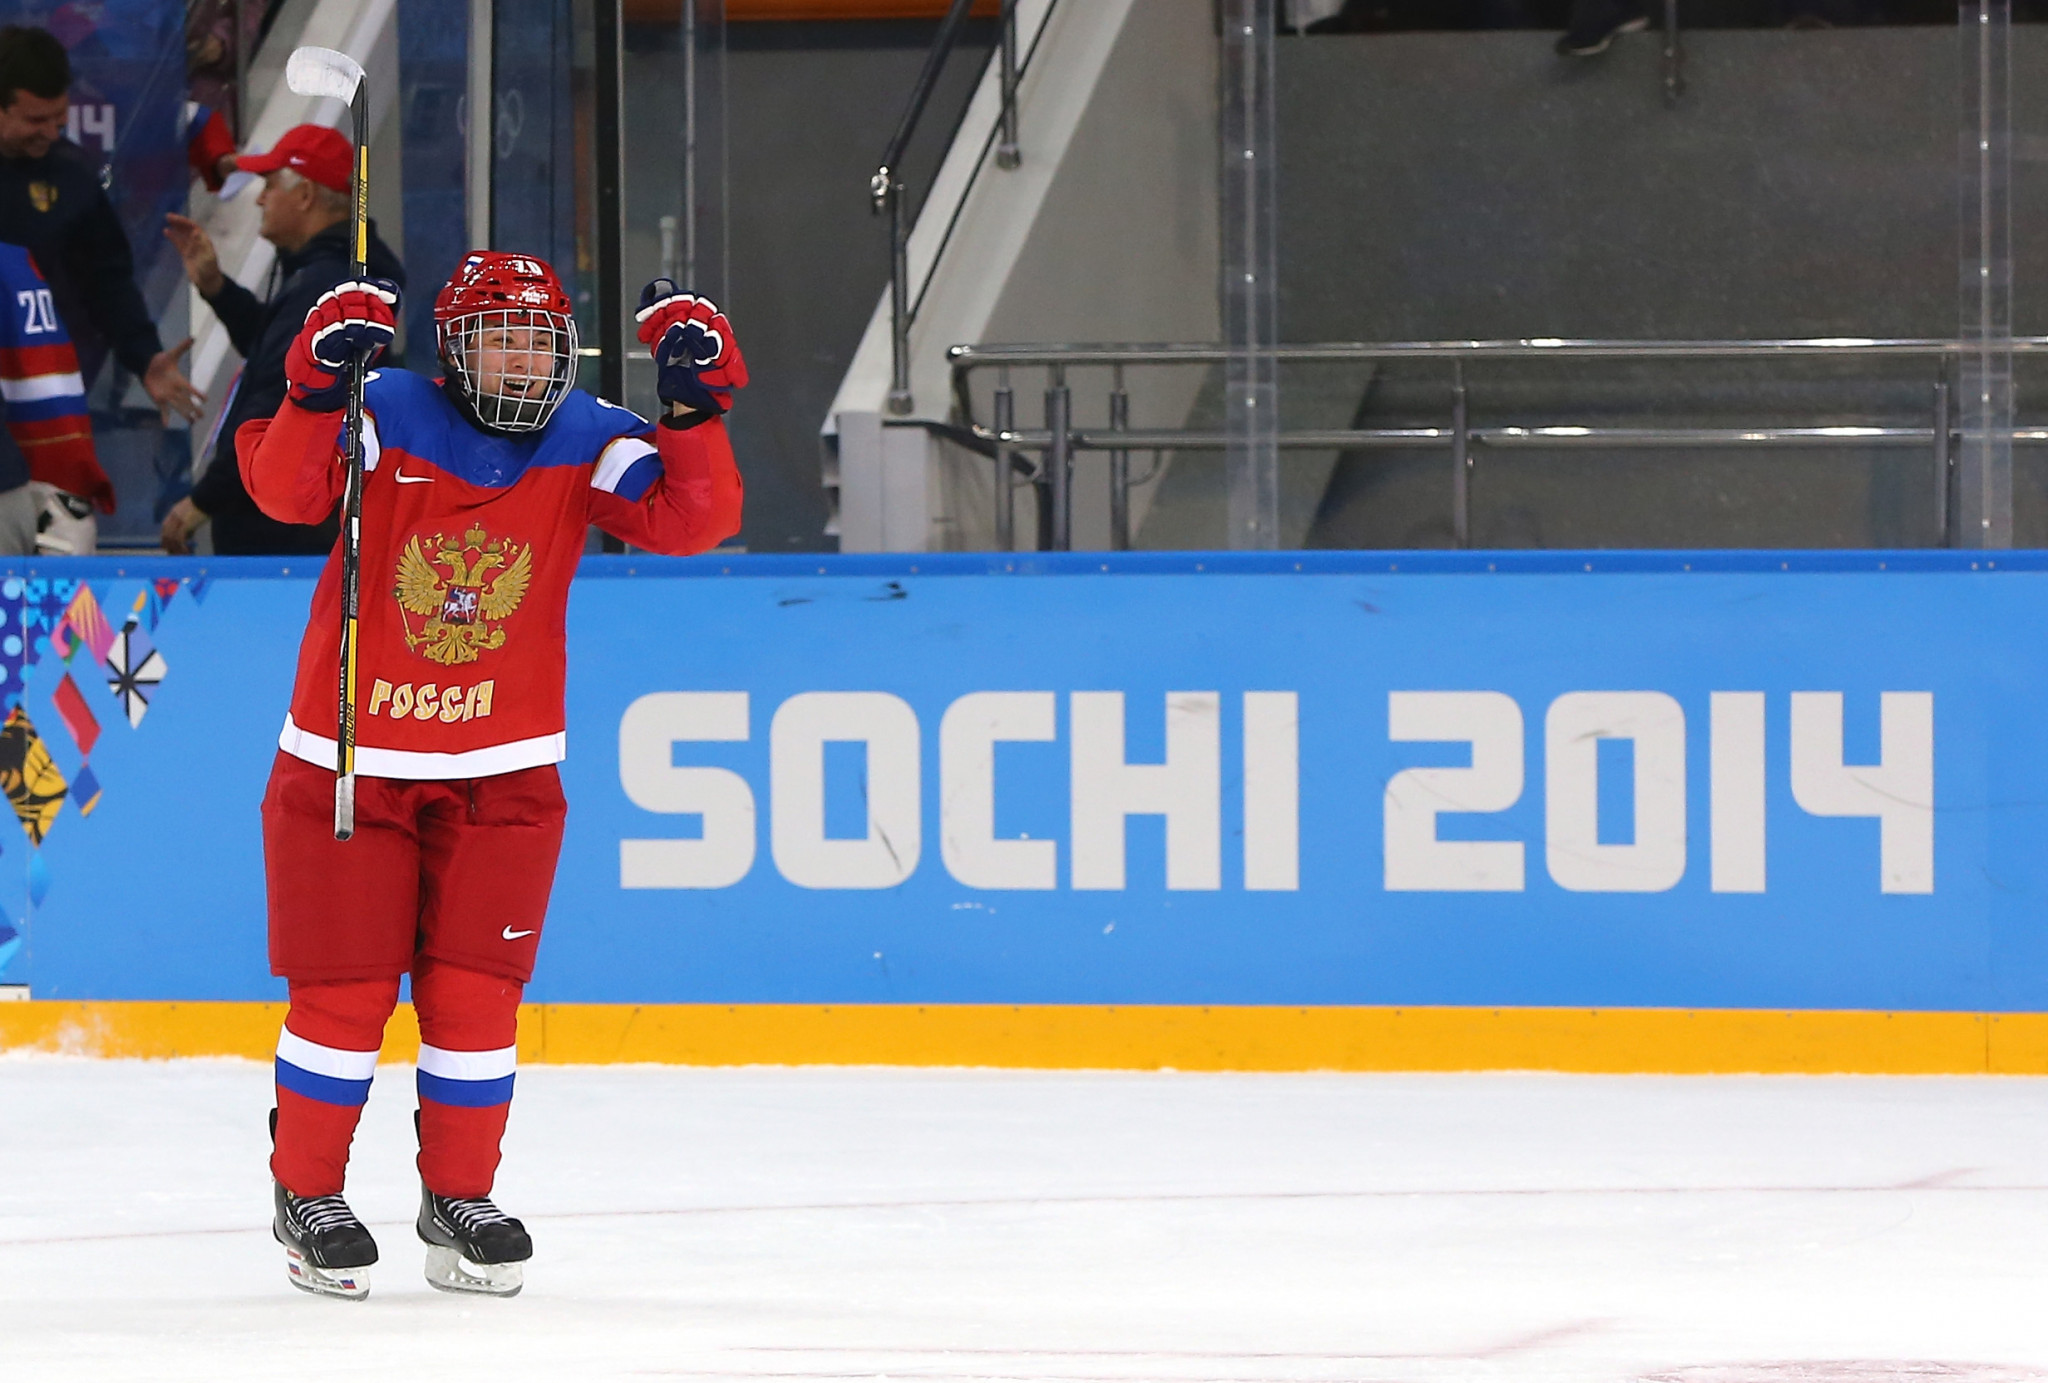 Anna Shibanova is among the six Russian ice hockey players sanctioned by the IOC ©Getty Images